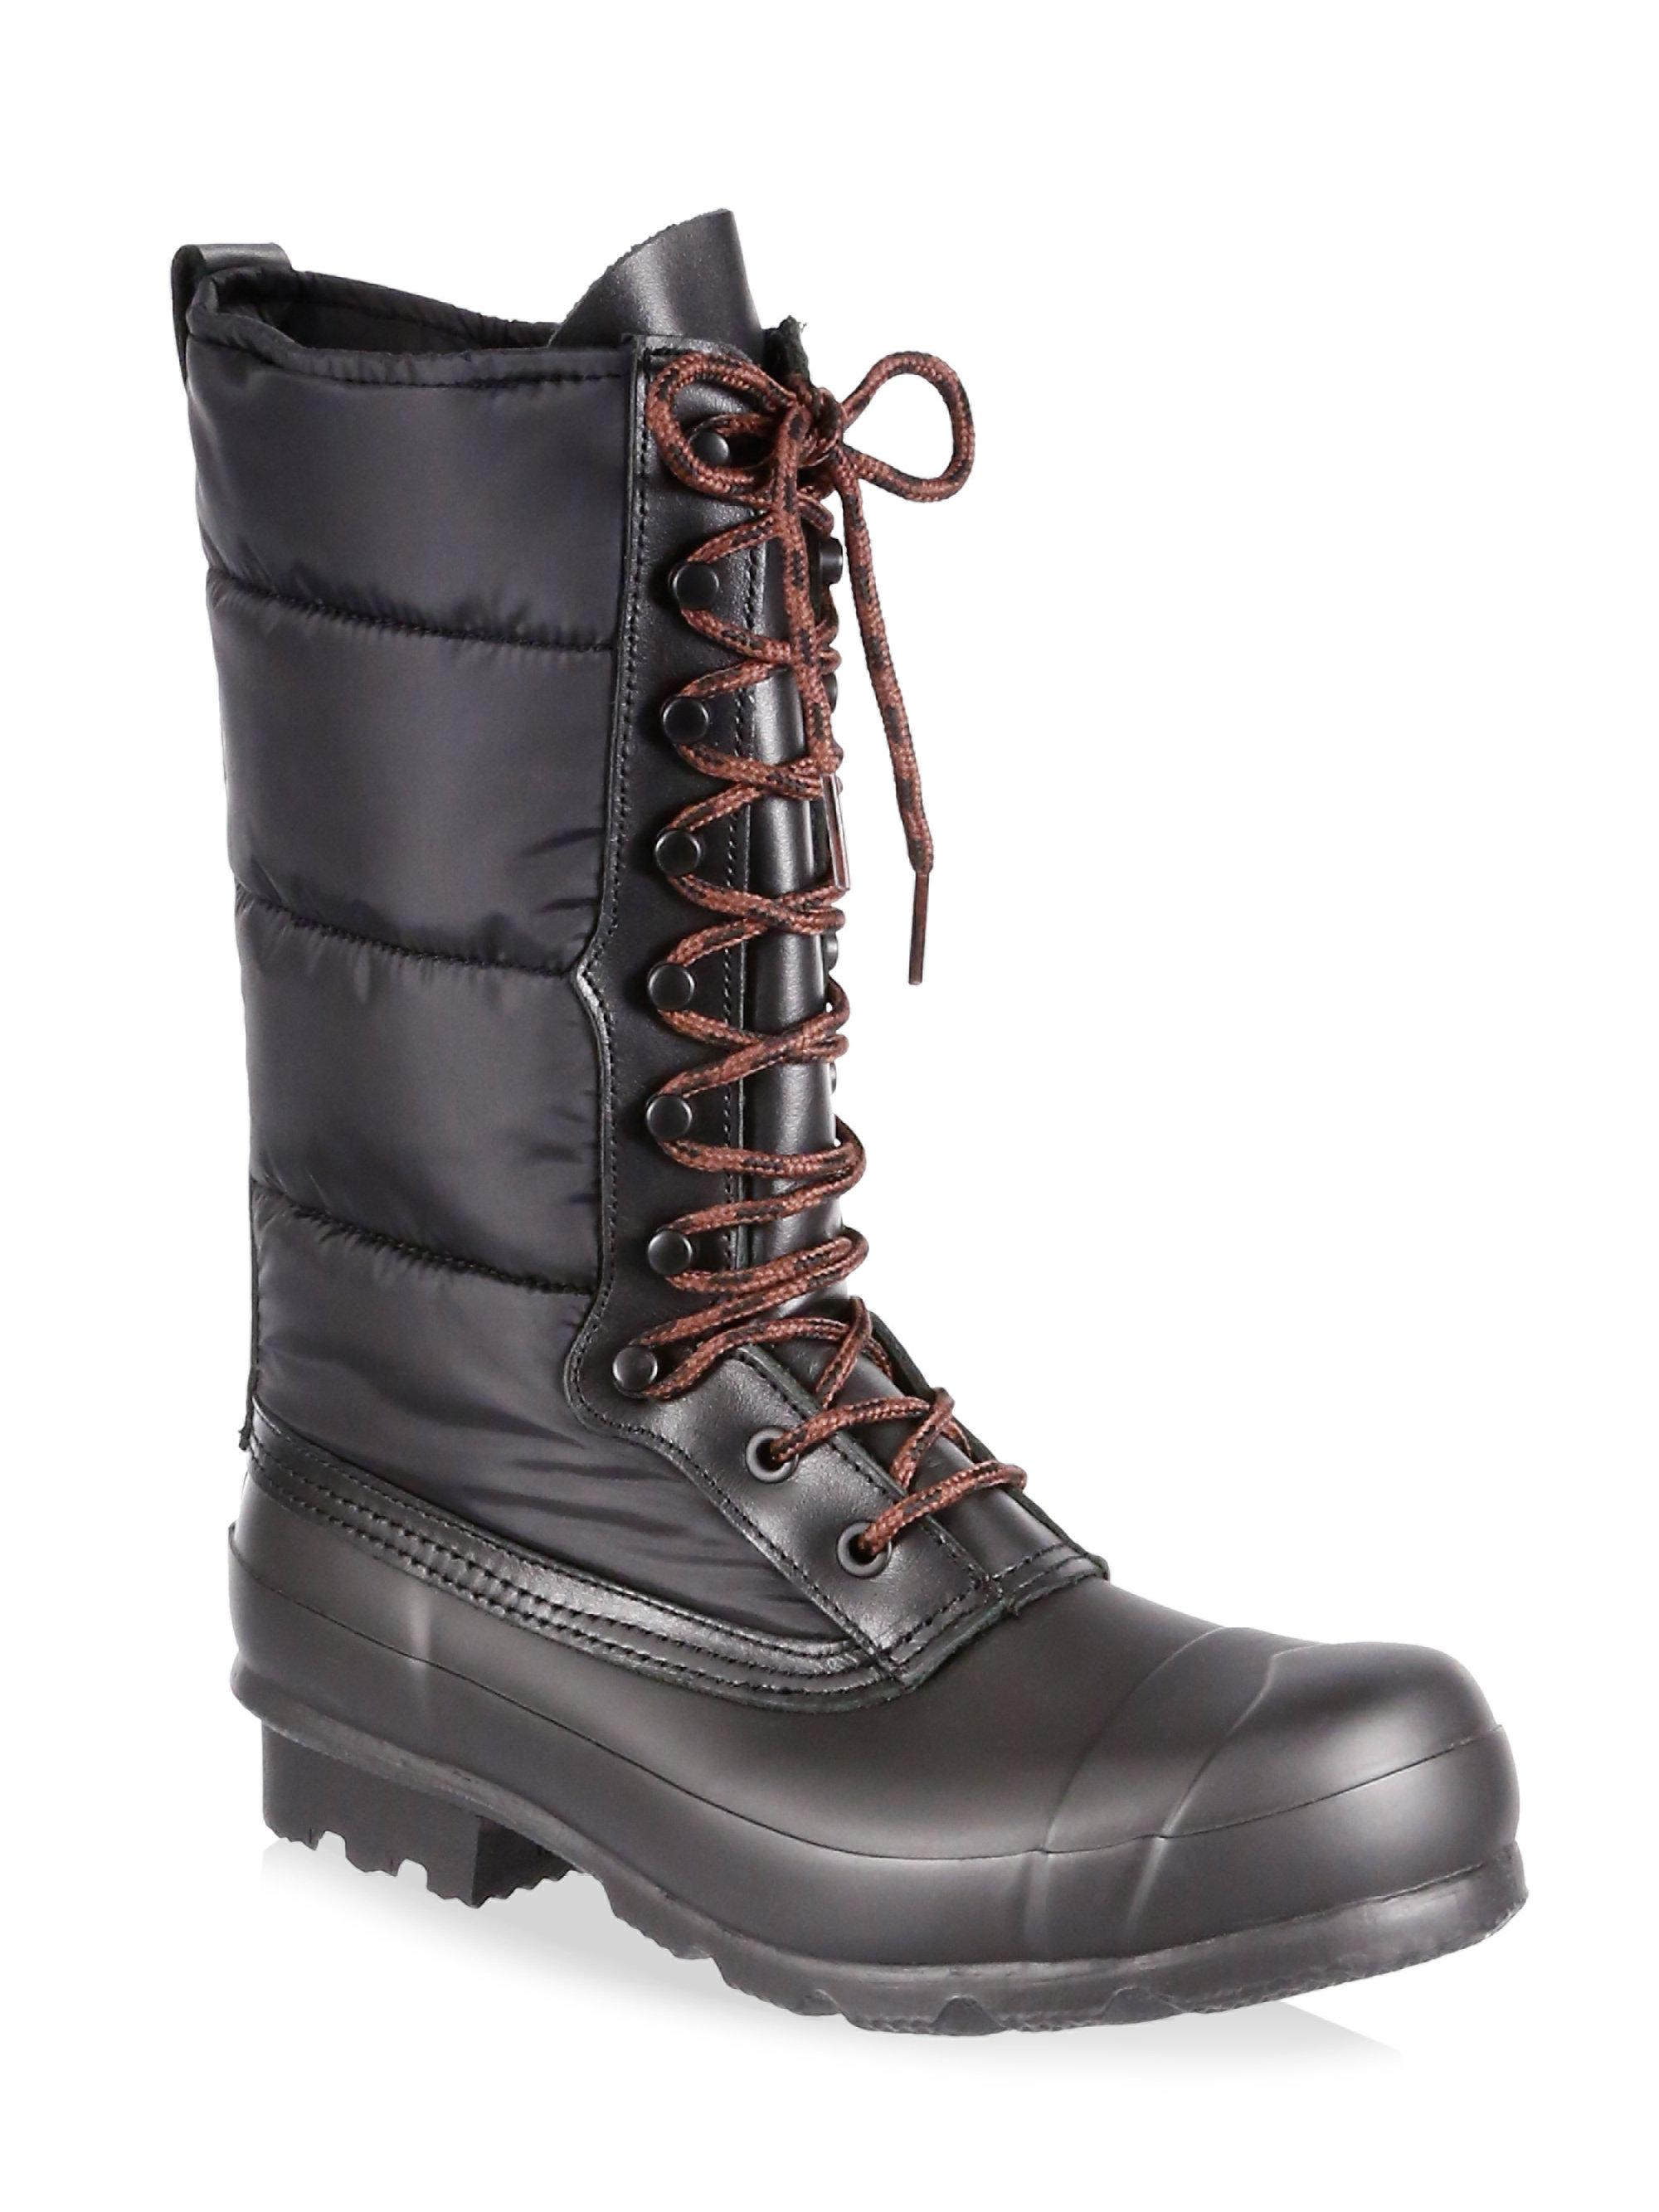 Hunter Original Quilted Nylon & Rubber Boots bZoAtwI4H